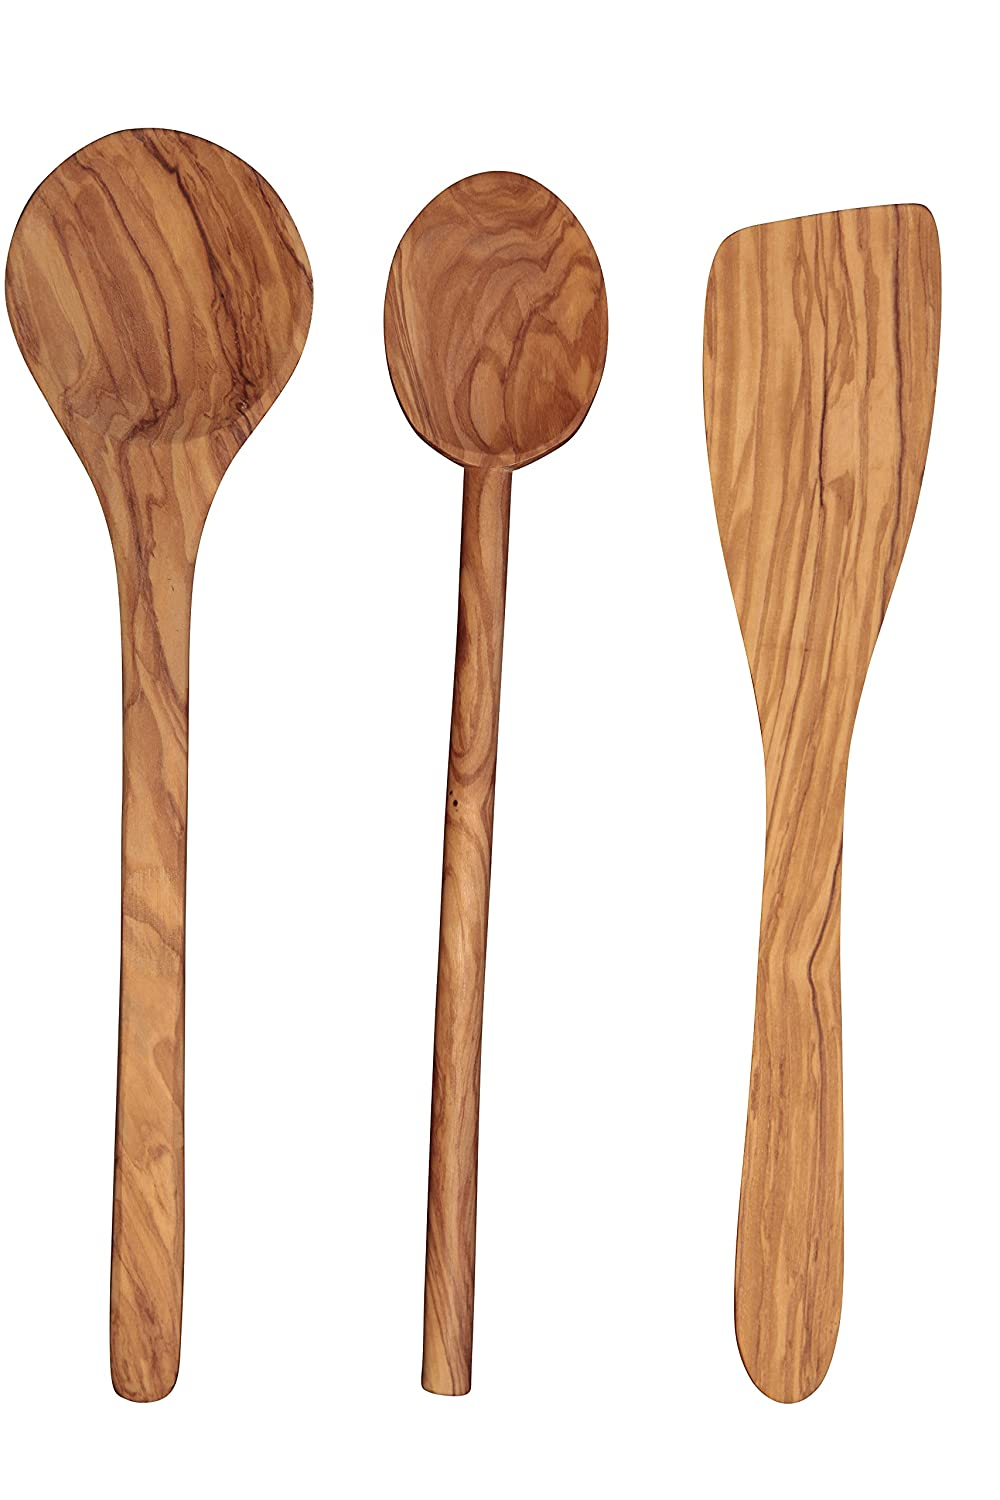 Scanwood Olive Wood Utensils